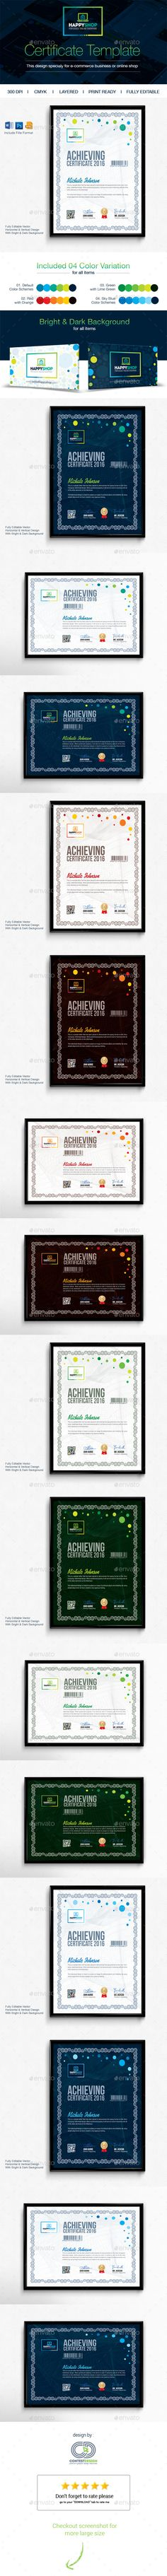 18 best Certificate Templates images on Pinterest | Cloud, Free ...